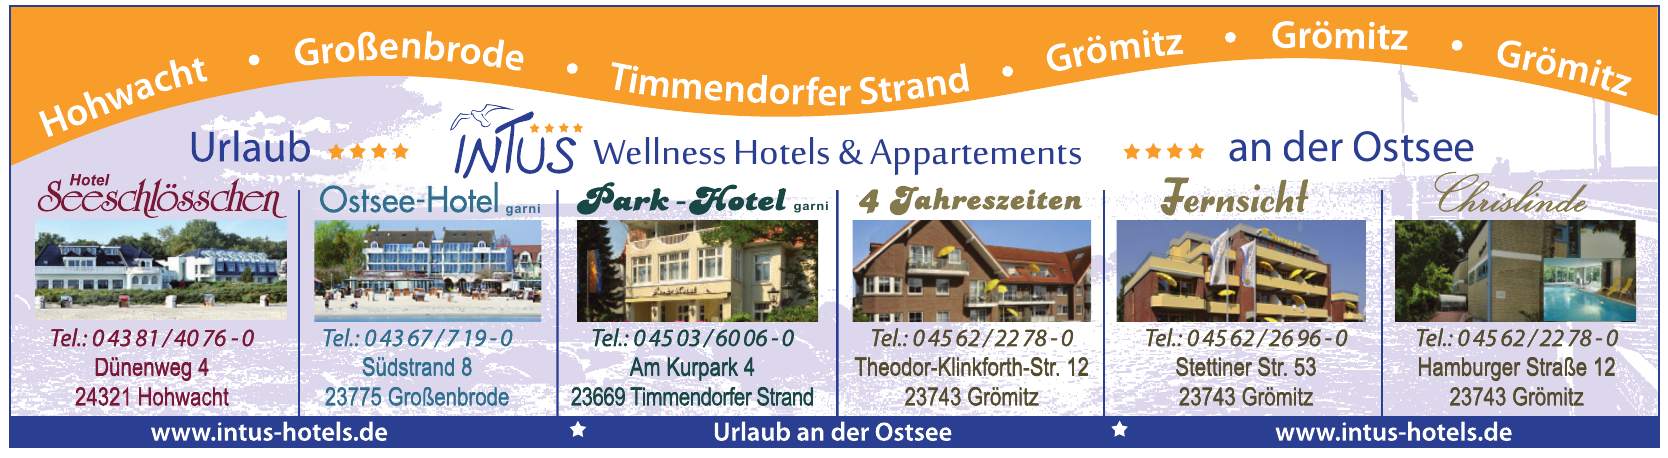 Intus Hotels und Appartements